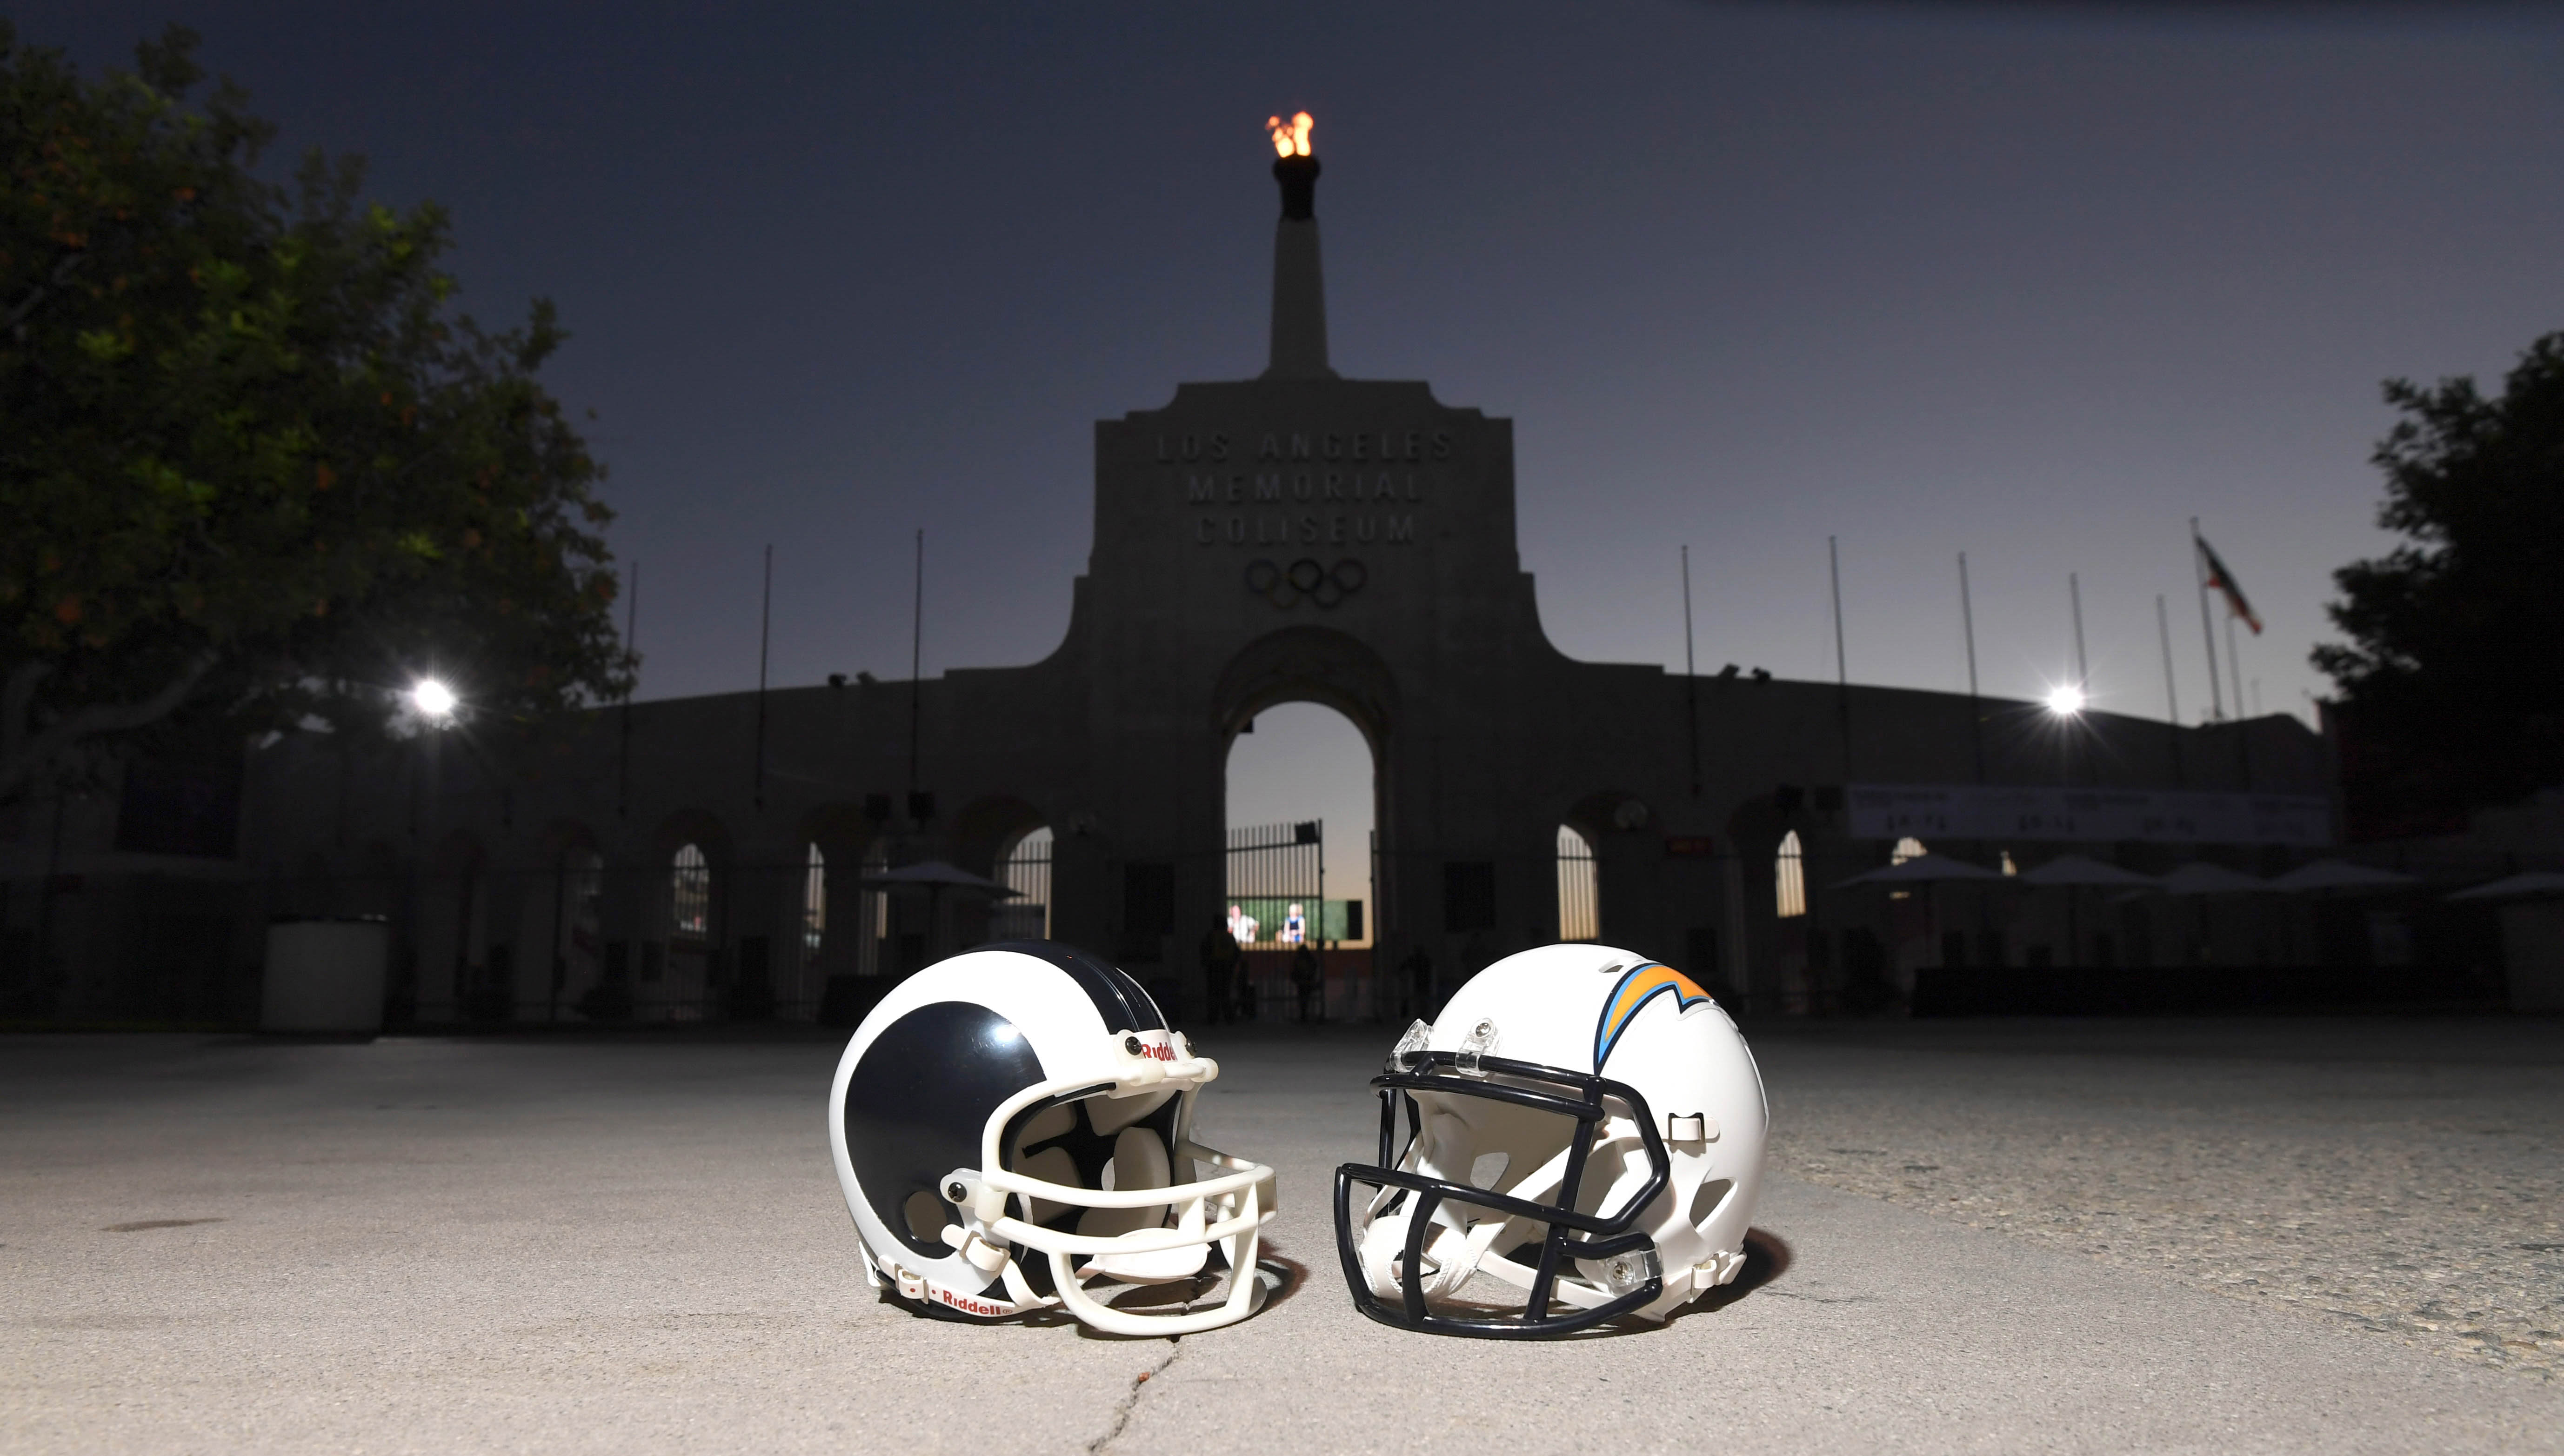 Los Angeles Rams & Chargers helmets in front of the Coliseum